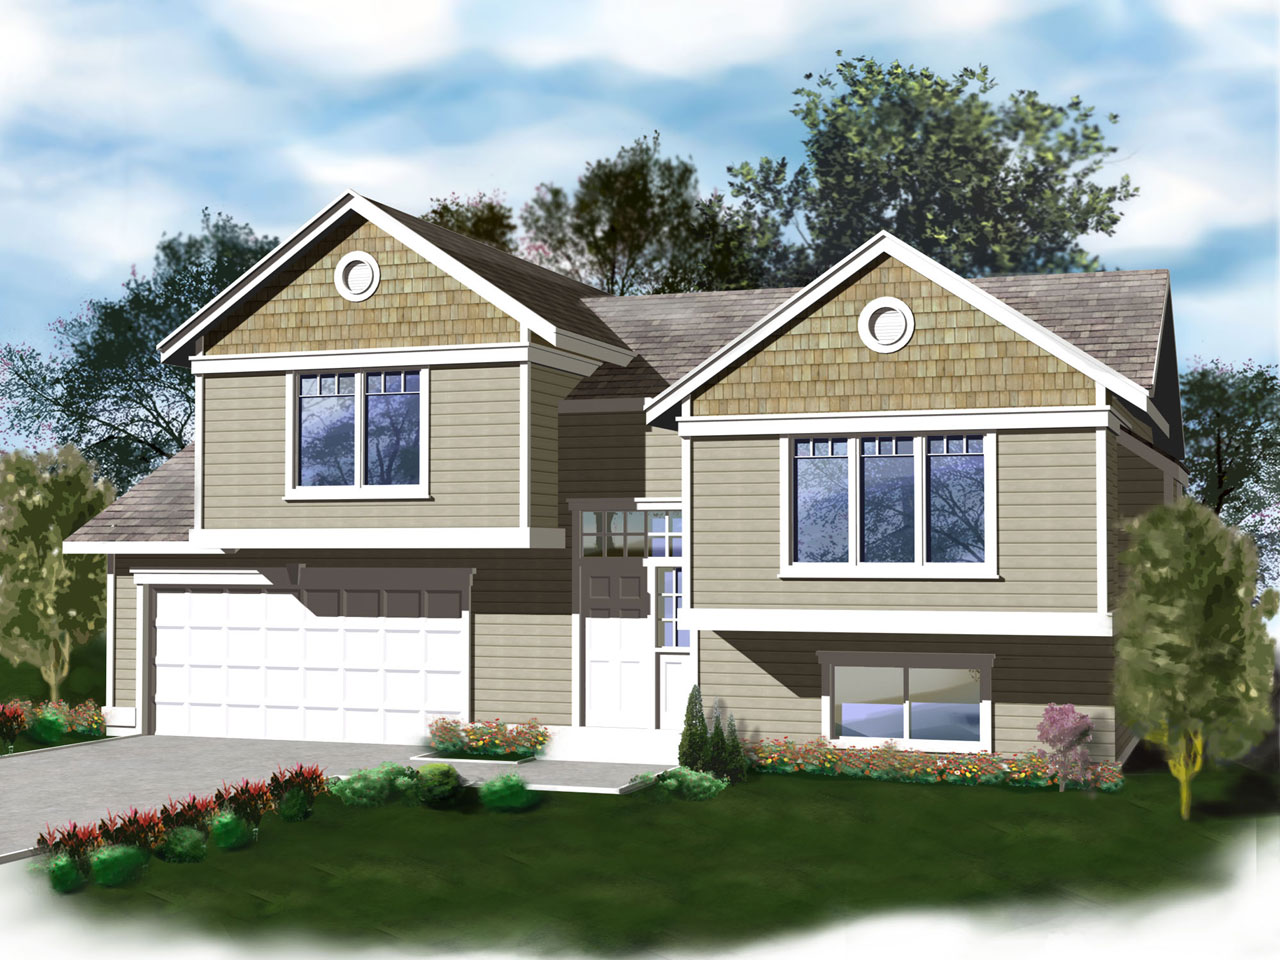 Craftsman Style Home Design 1-288